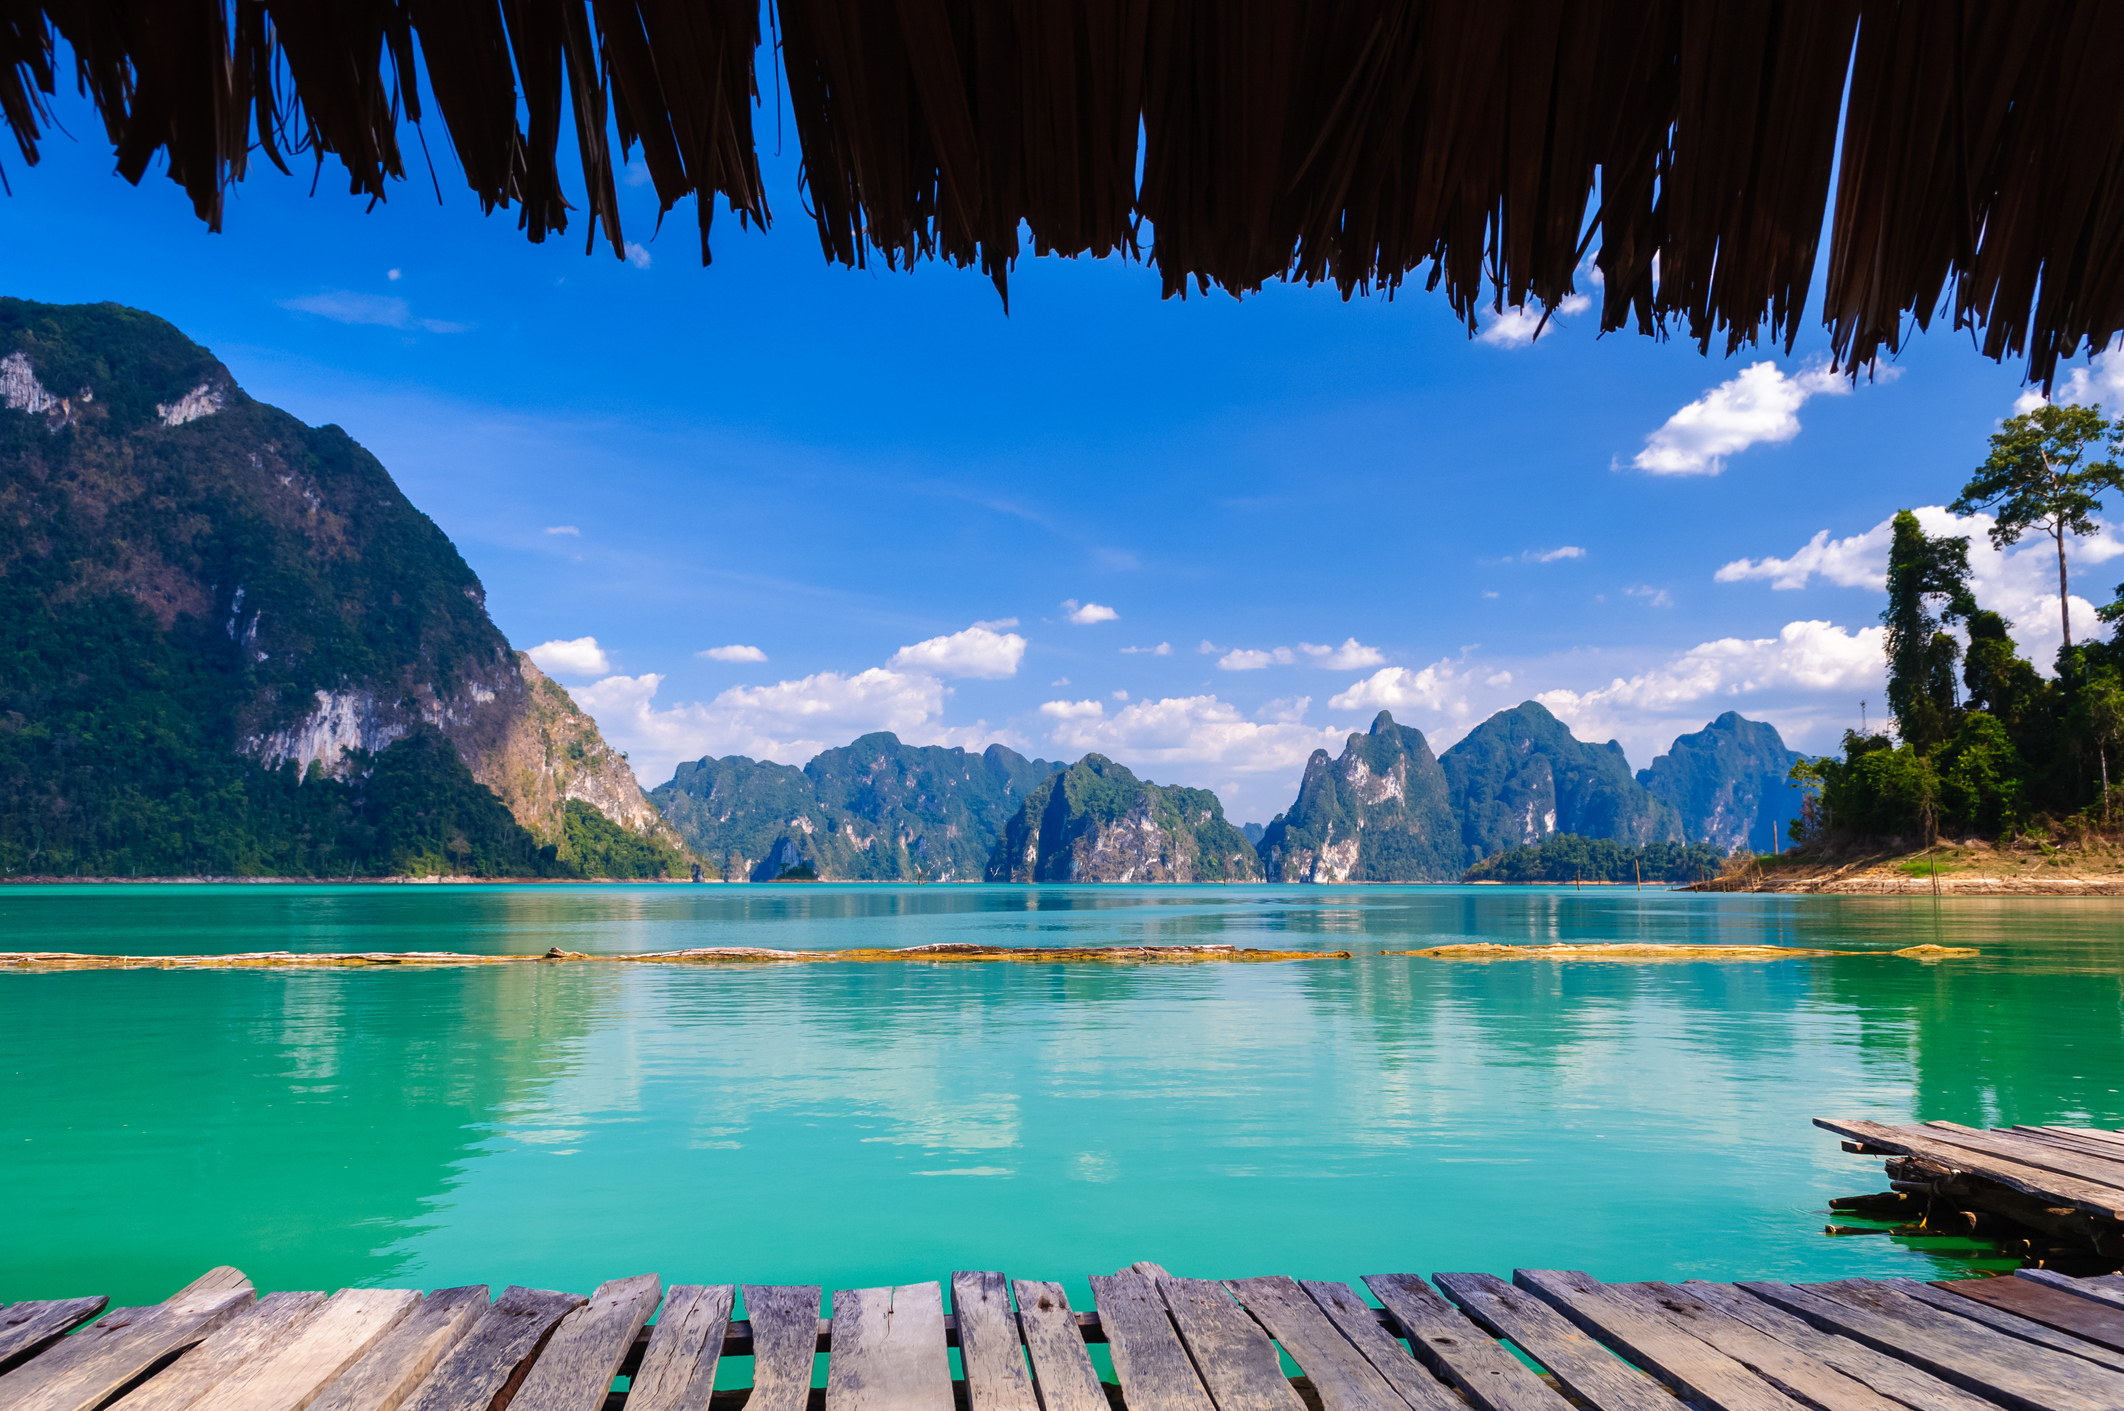 A photo taken from the wooden deck of a floating hut, looking out on a turquoise lake dotted with jagged mountains